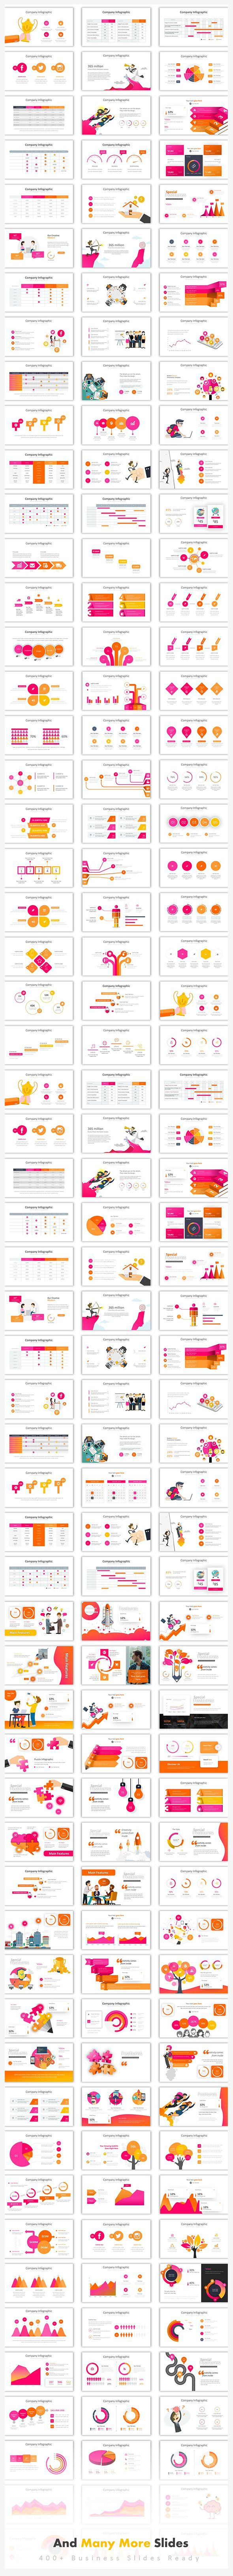 Business Pitch Deck Powerpoint Bundle - 4